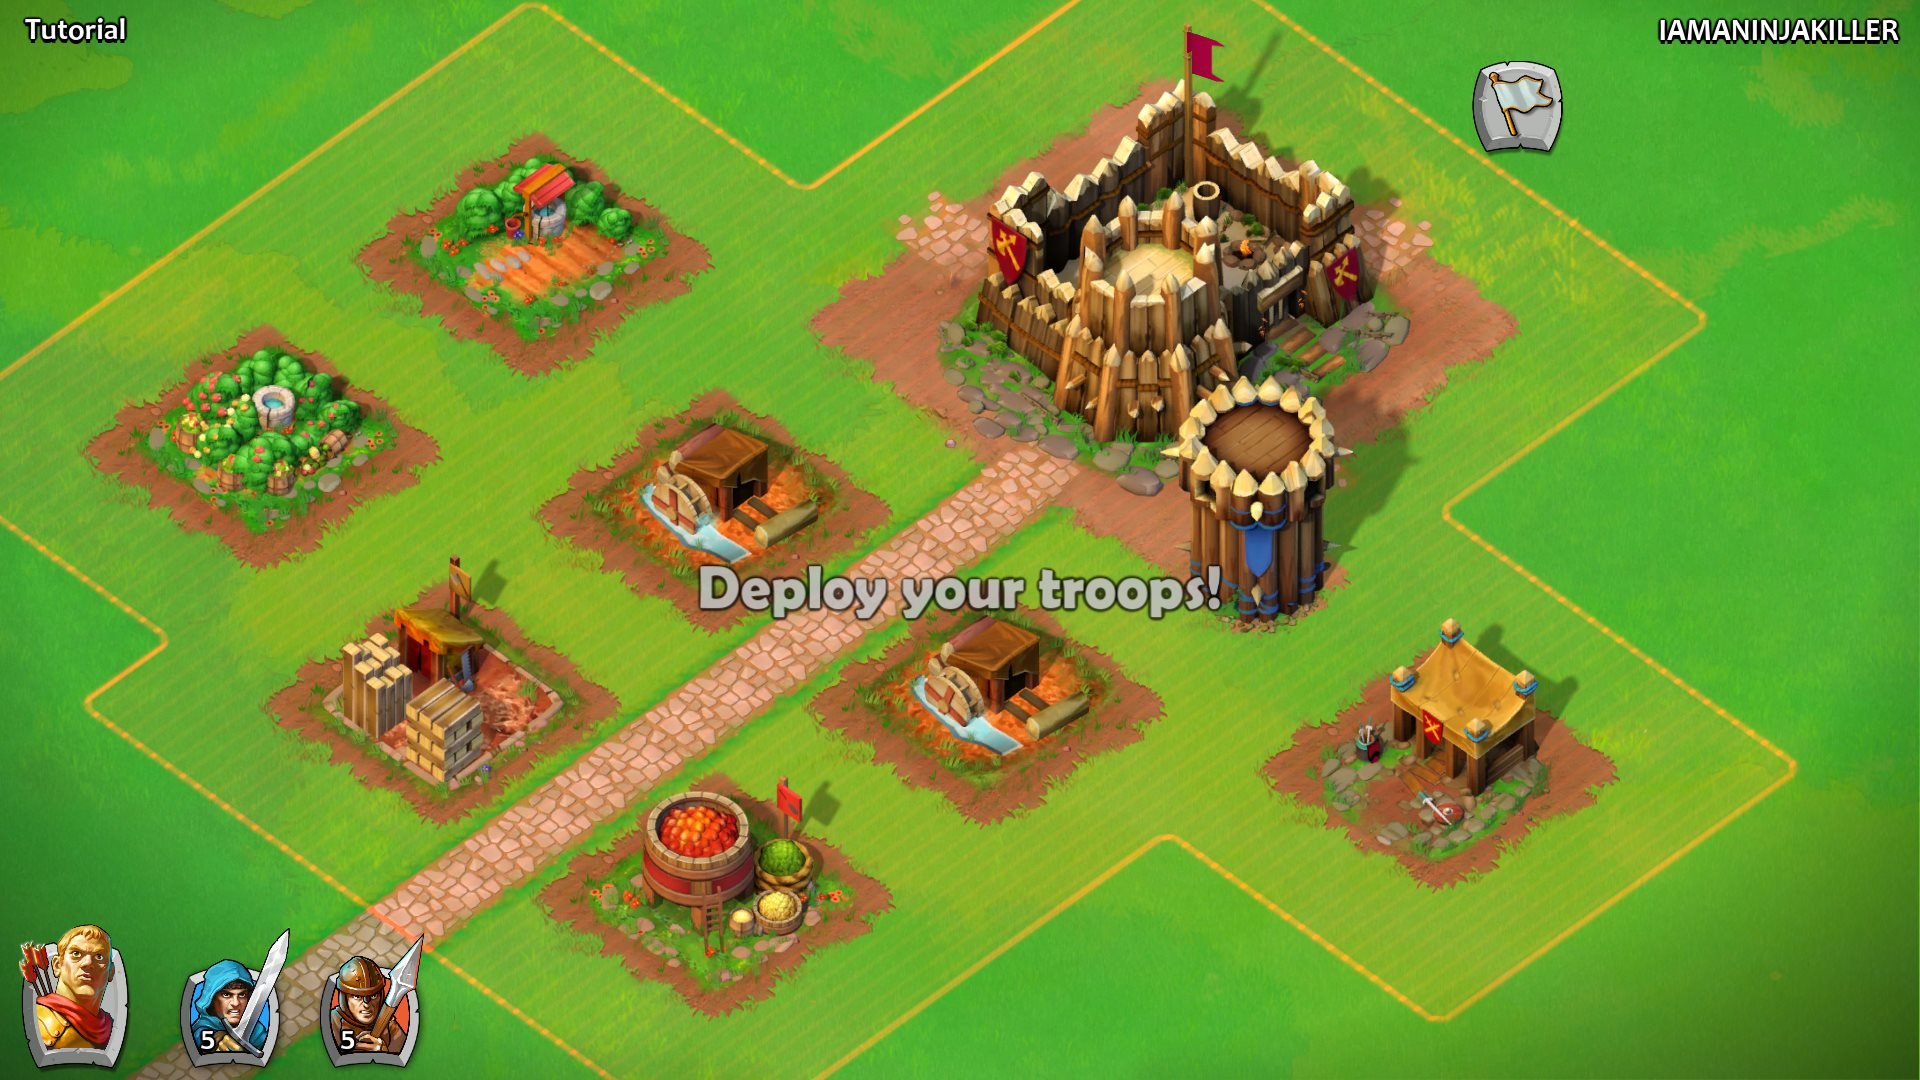 Age-of-Empires-Castle-Siege-Now-Available-on-Windows-8-Windows-Phone-8-459165-6.jpg